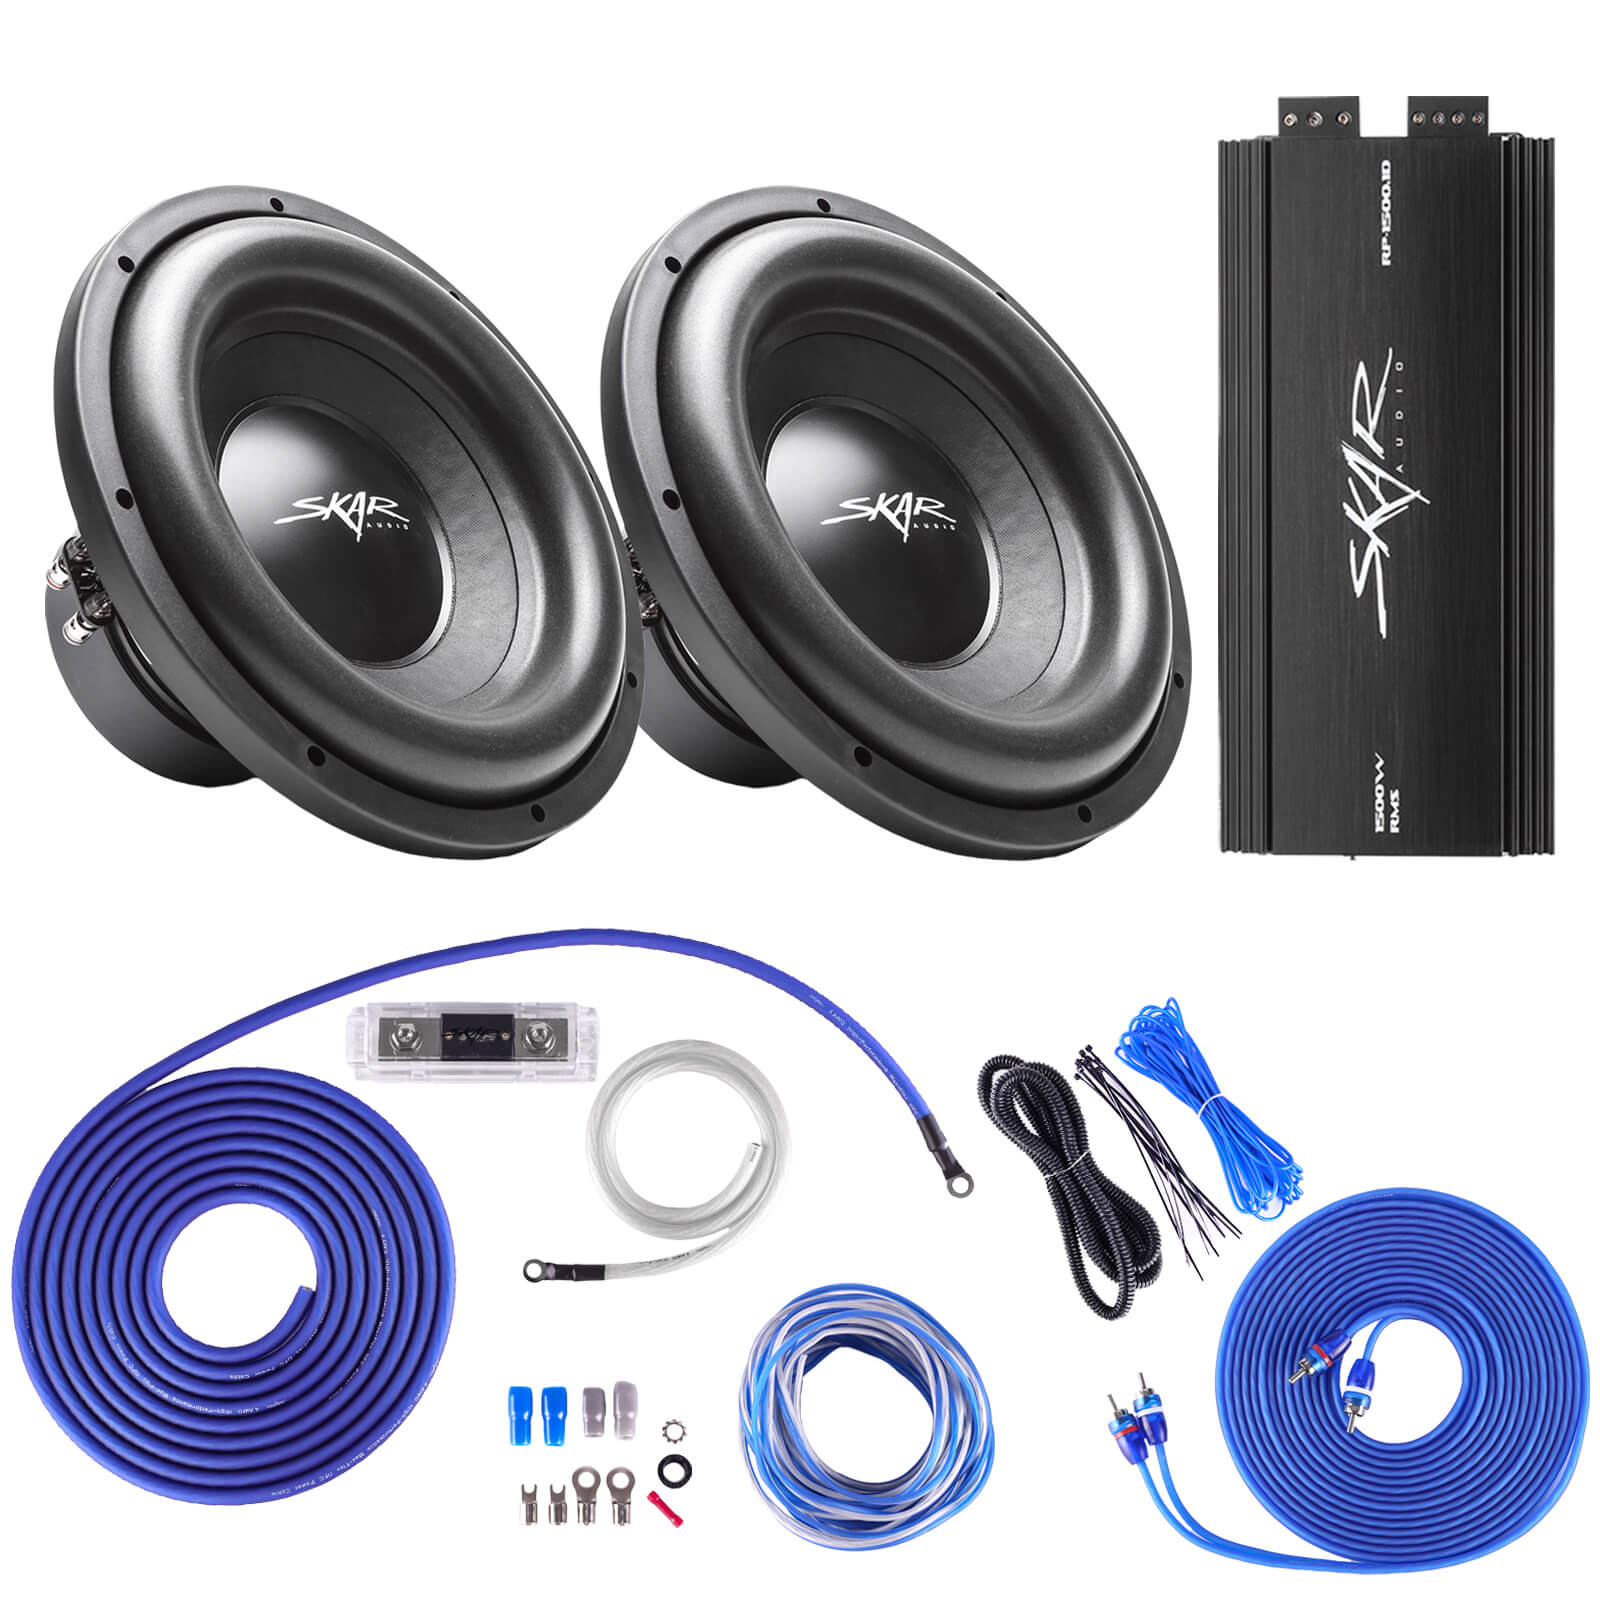 Skar Audio IX-10 D4 Dual 10 400 Watt RMS Subwoofer Package with RP-350.1D Amplifier and 4 Gauge Amp Wiring Kit